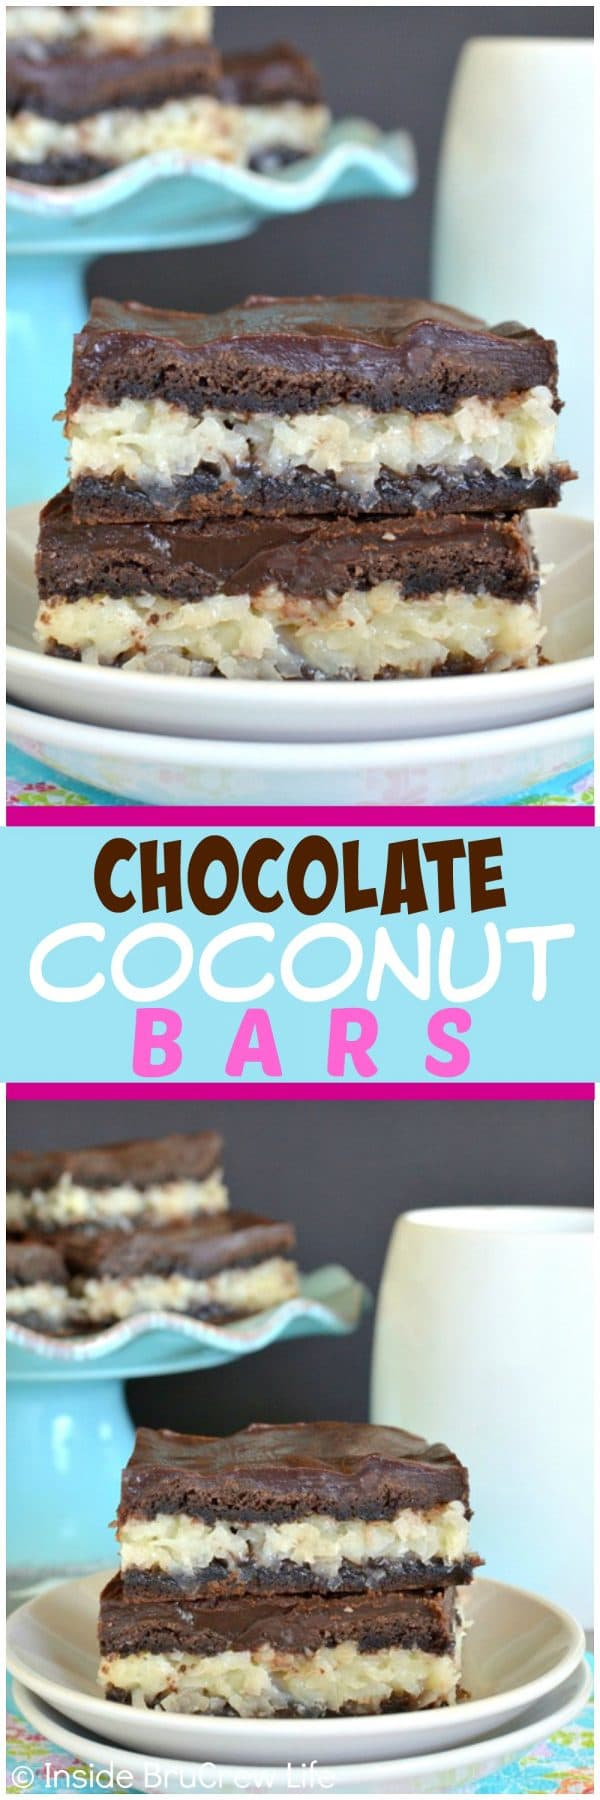 Chocolate Coconut Bars - these easy bars have a creamy coconut filling, chocolate crust, and chocolate glaze! Easy dessert recipe for sharing!